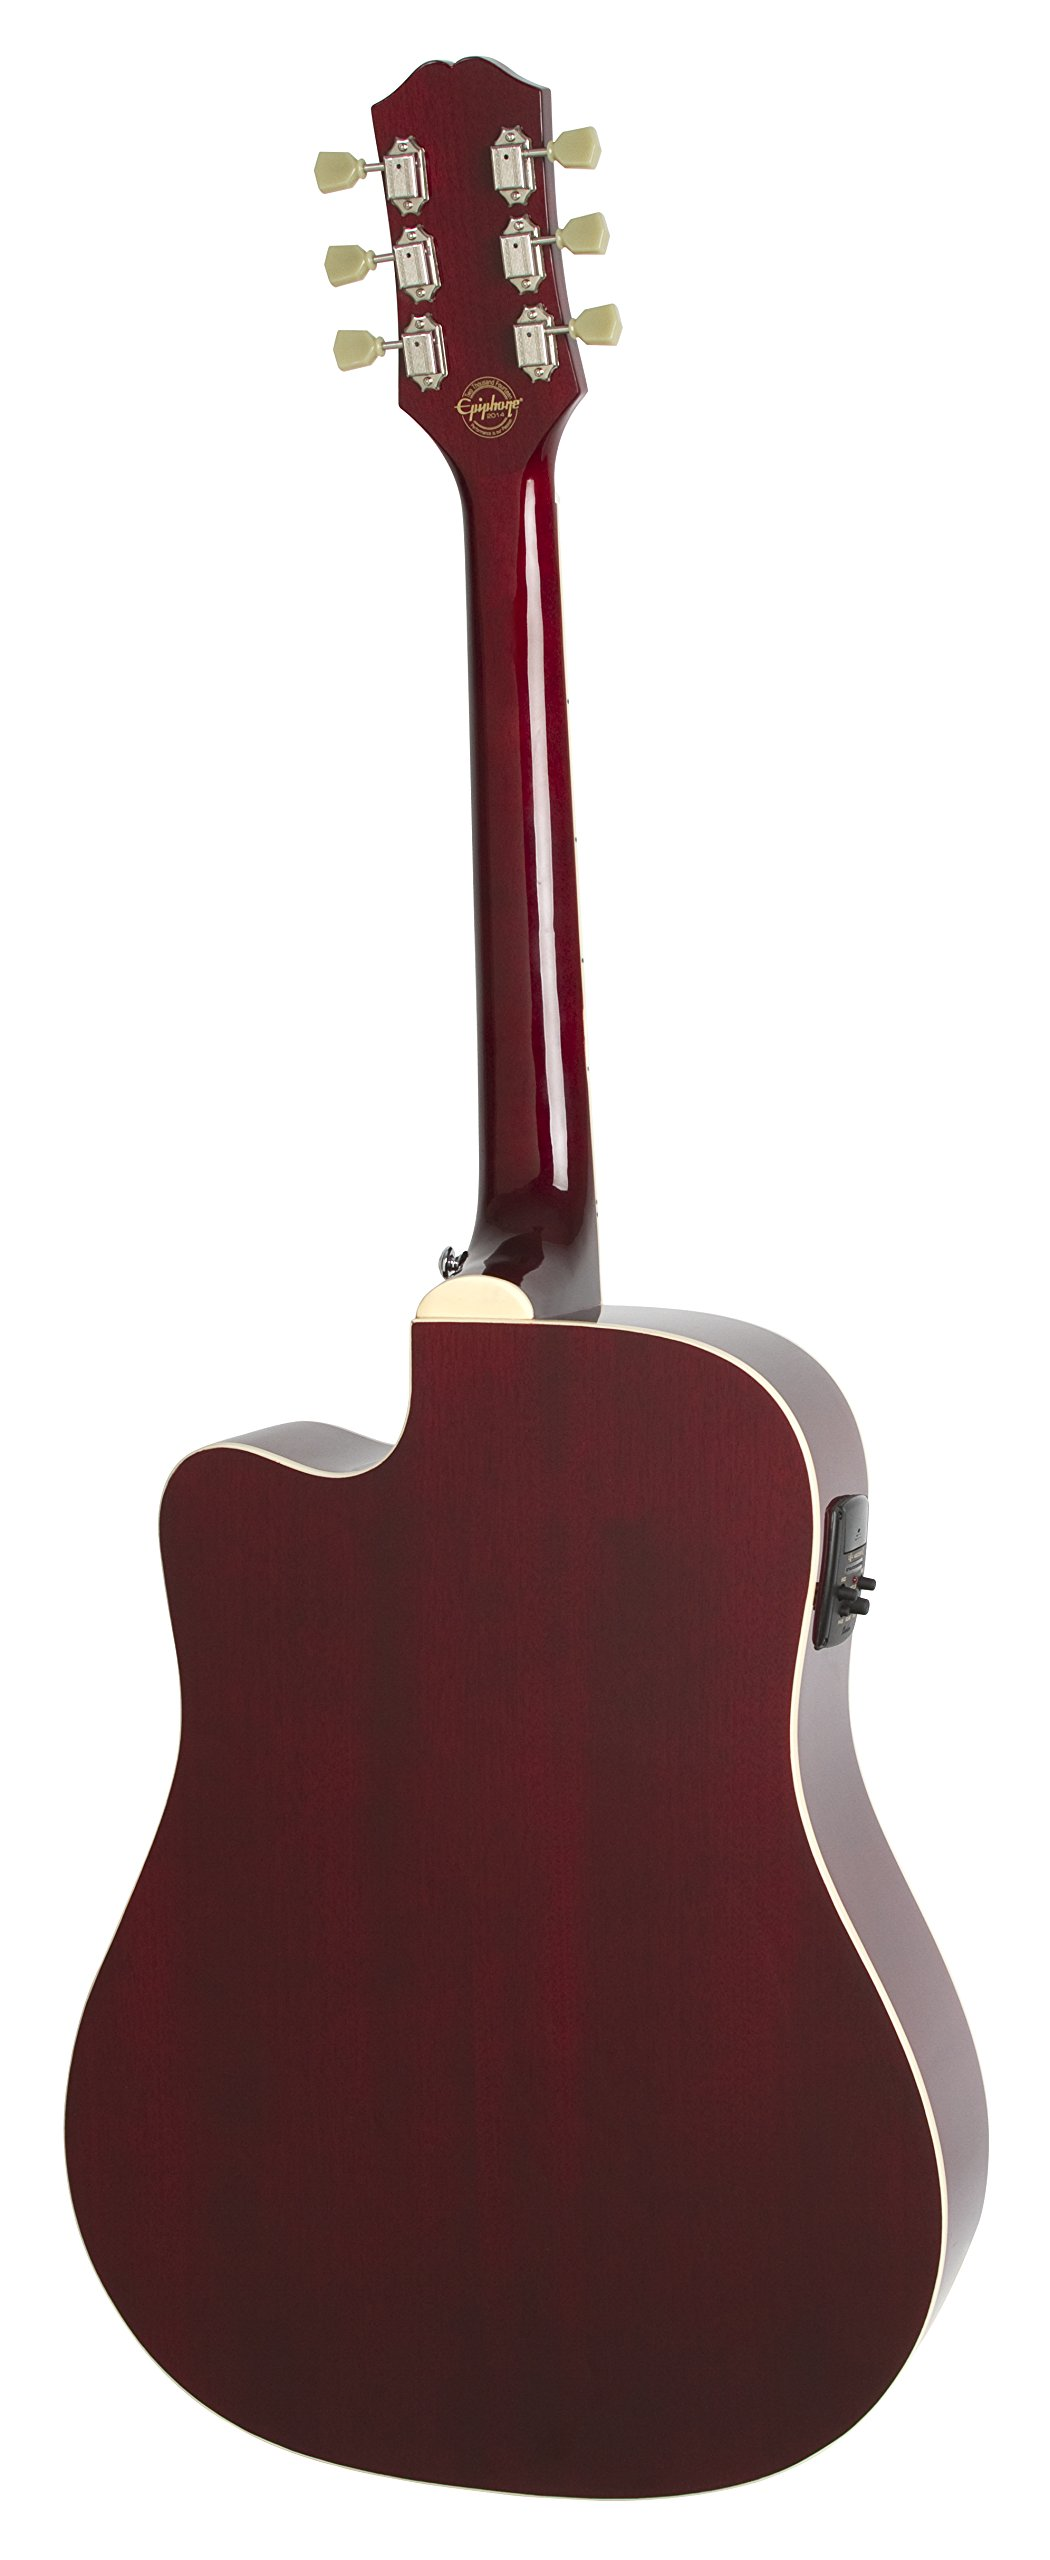 epiphone pro 1 ultra solid top acoustic electric guitar system for beginners gloss wine red. Black Bedroom Furniture Sets. Home Design Ideas